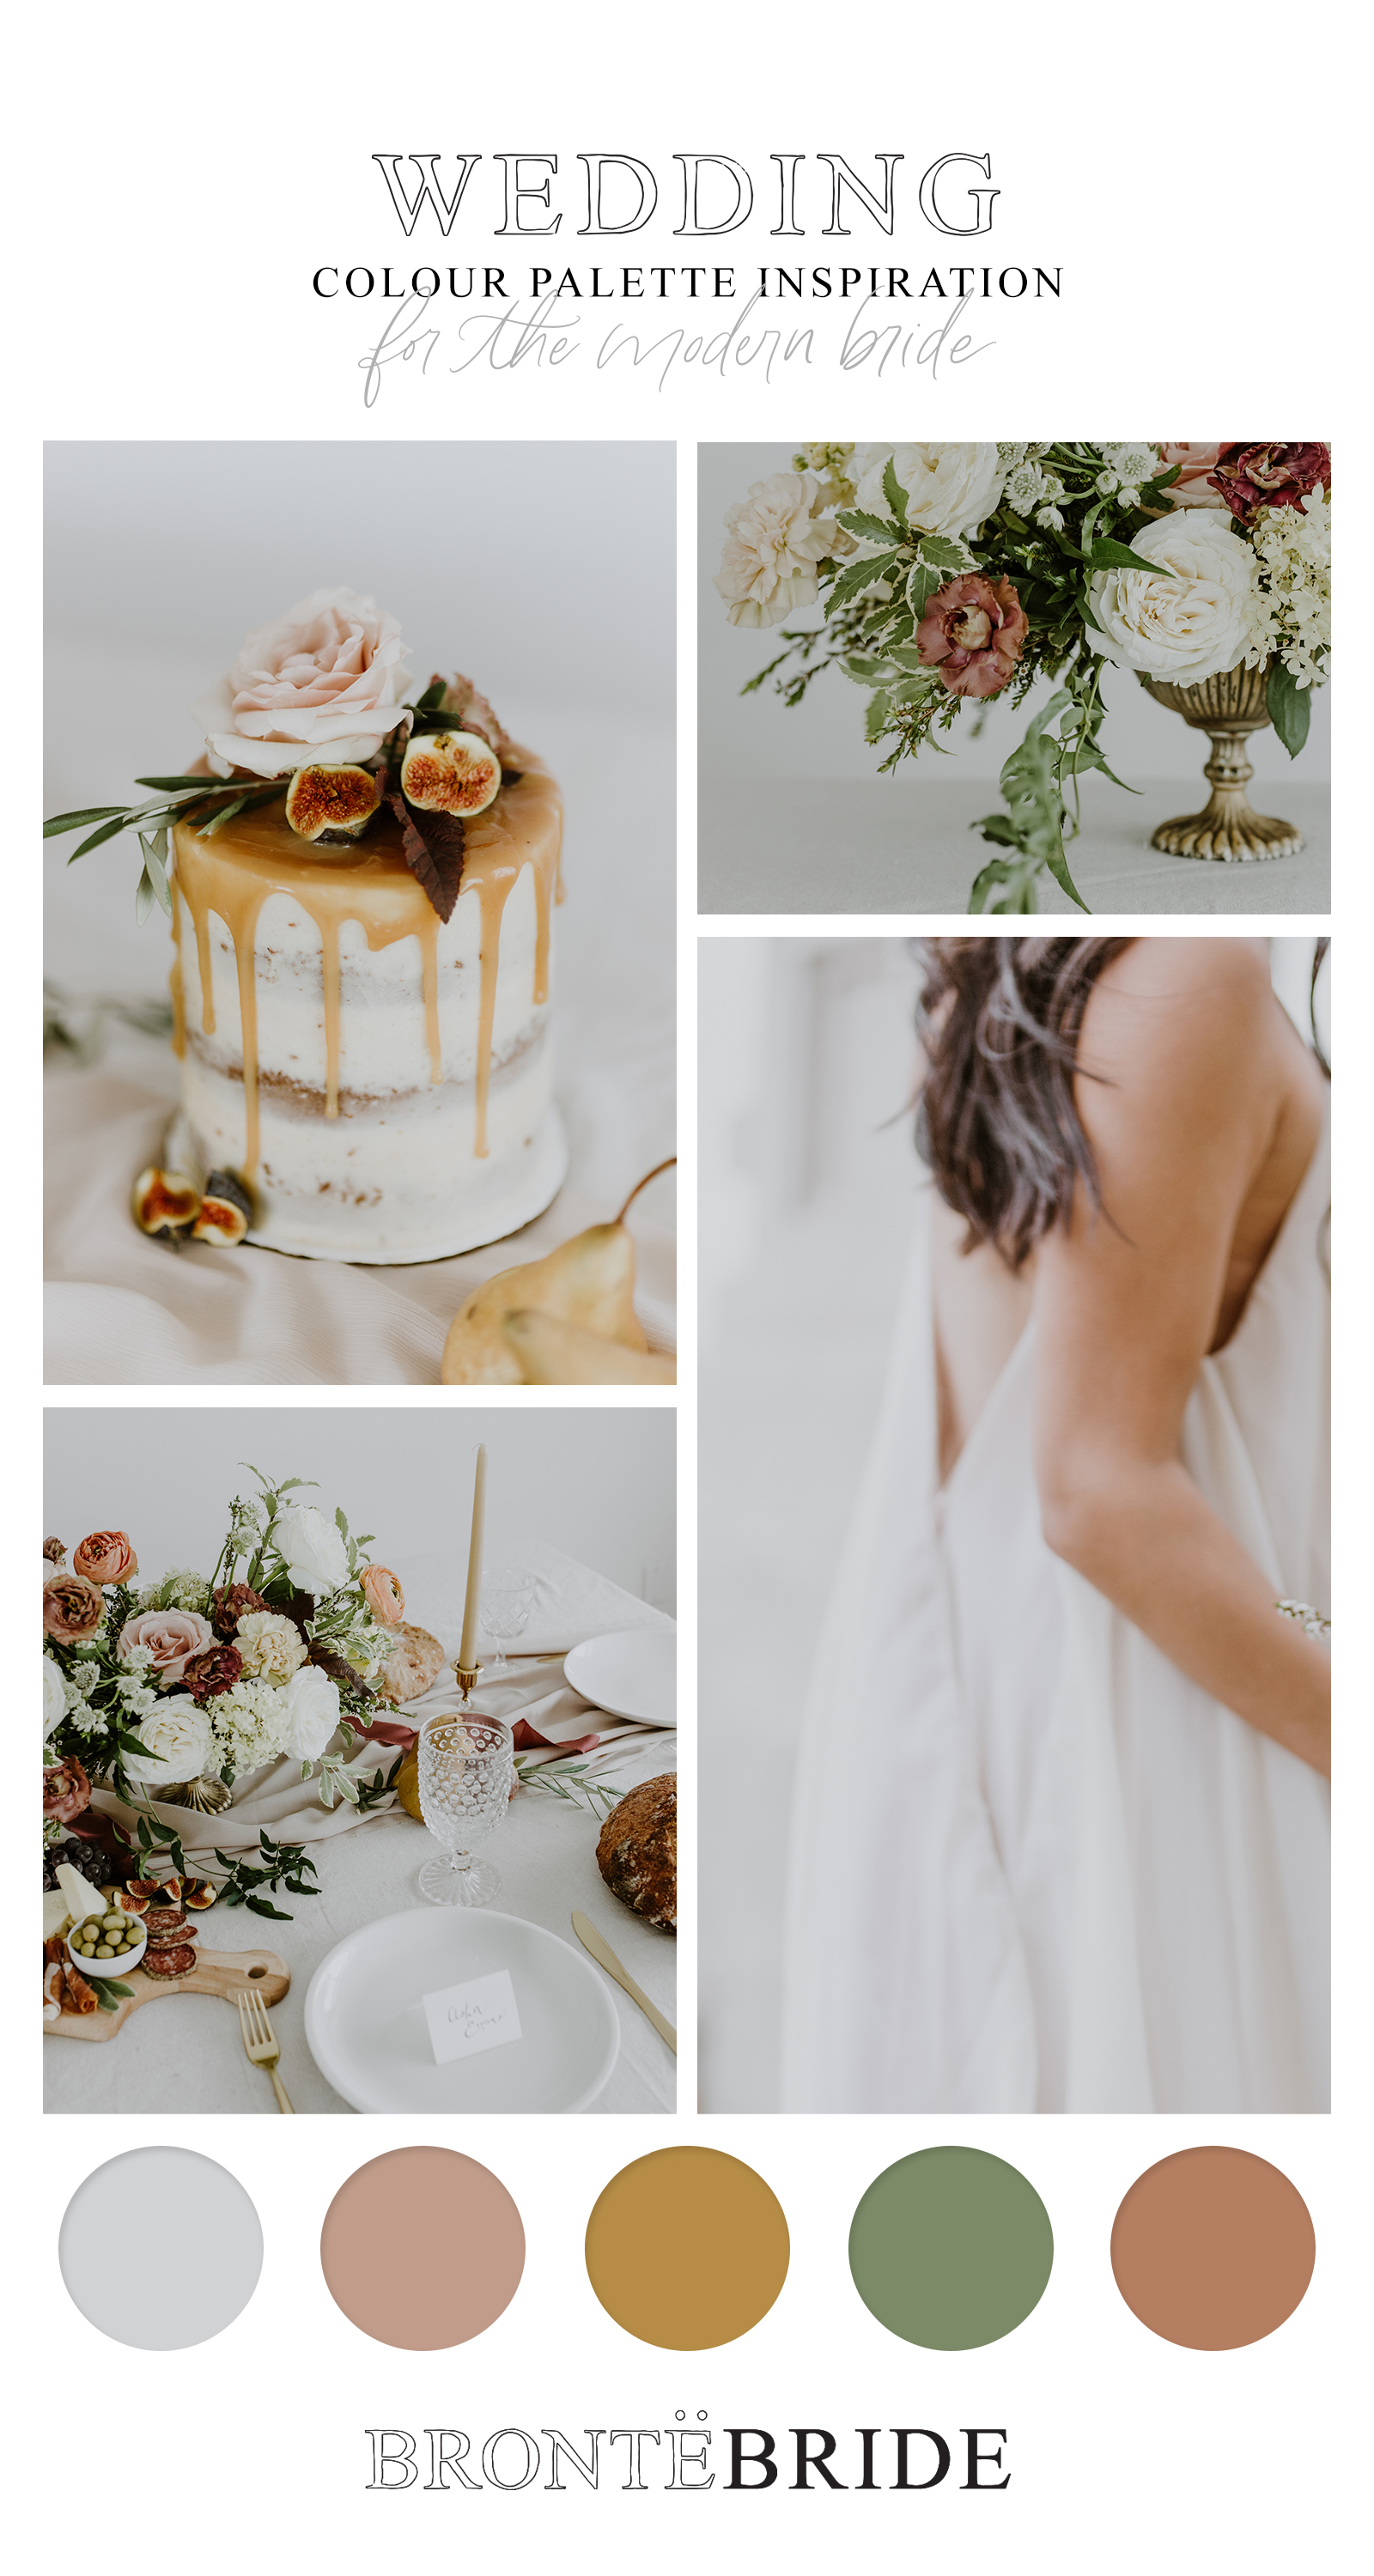 Old-World Romantic Styling Meets Warm Family-Style Gathering // Inspiration Shoot at Spruce Meadows - on the Bronte Bride Blog - Wedding Colour Palette Inspiration